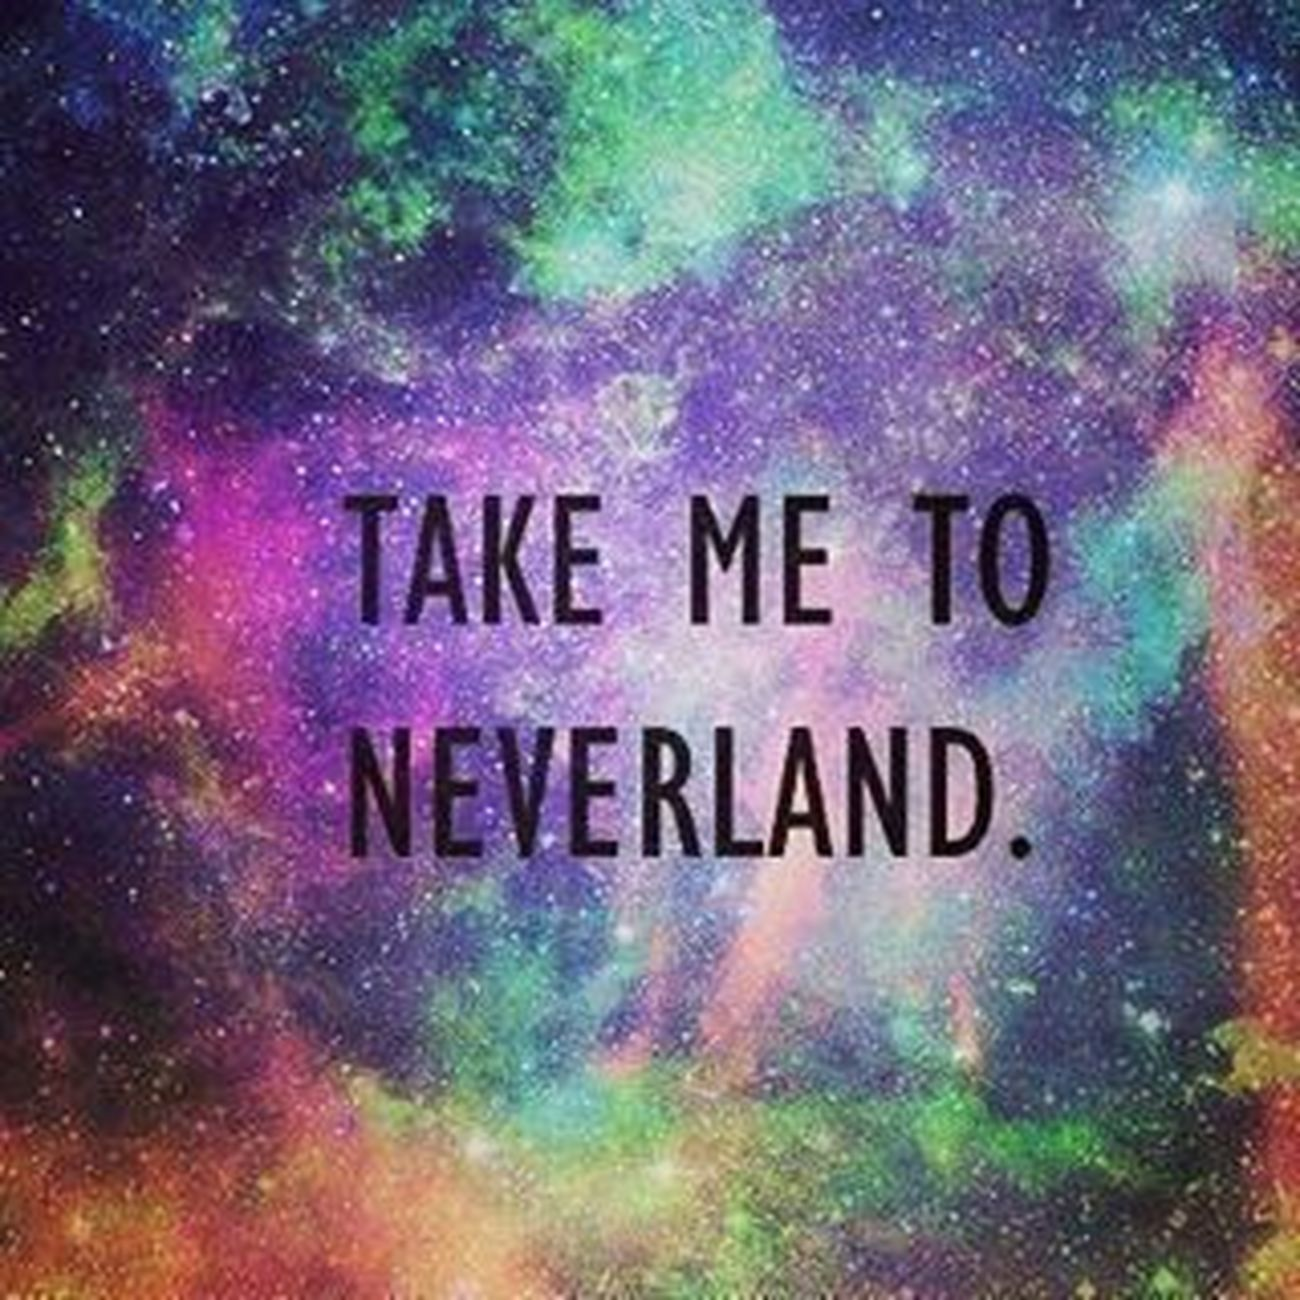 NeverNeverLand Wantthefuckout Daydreamin